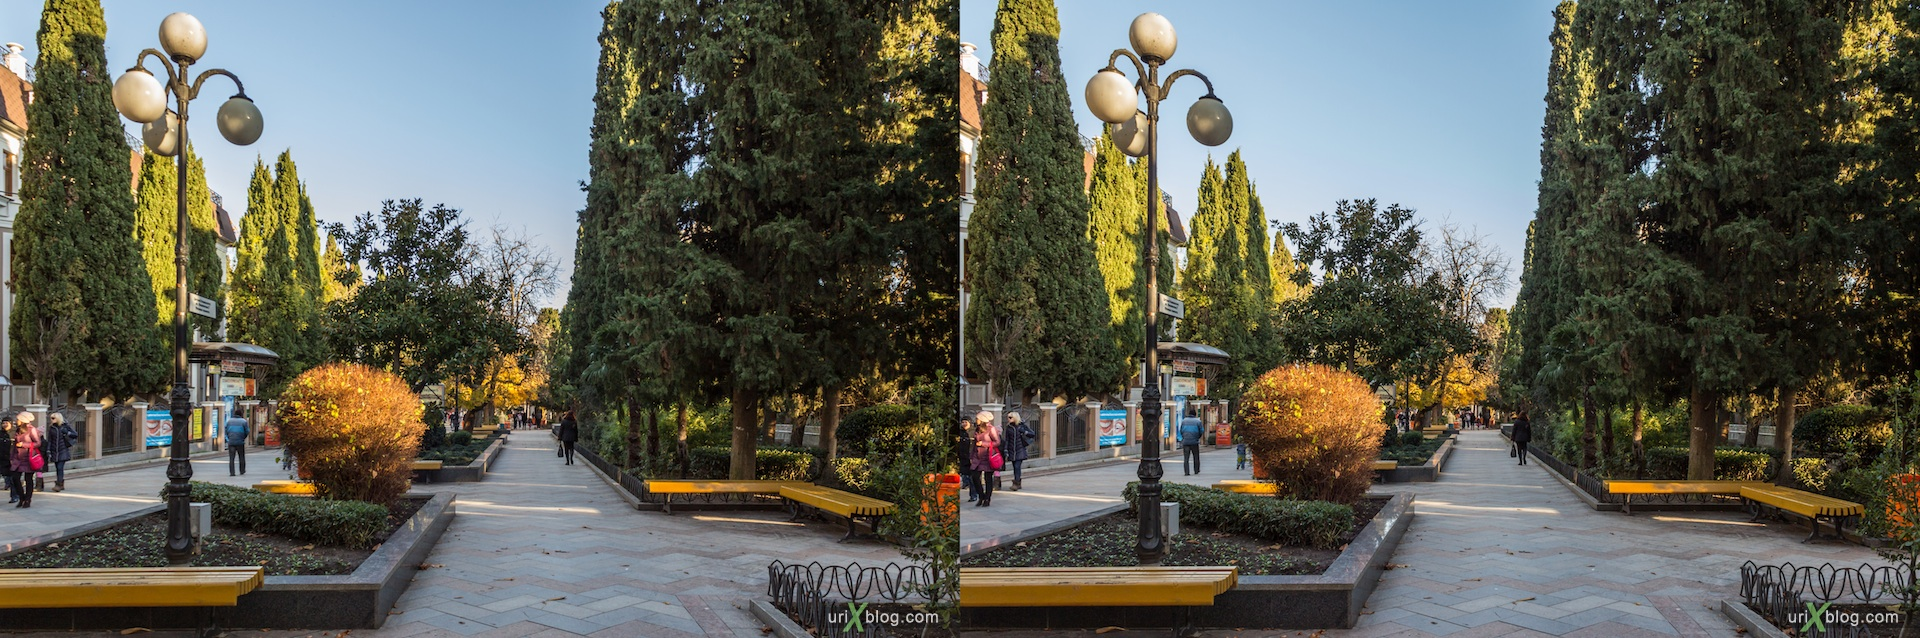 2012, Pushkinskaya street, Yalta, evening, coast city, Crimea, Ukraine, 3D, stereo pair, cross-eyed, crossview, cross view stereo pair, stereoscopic